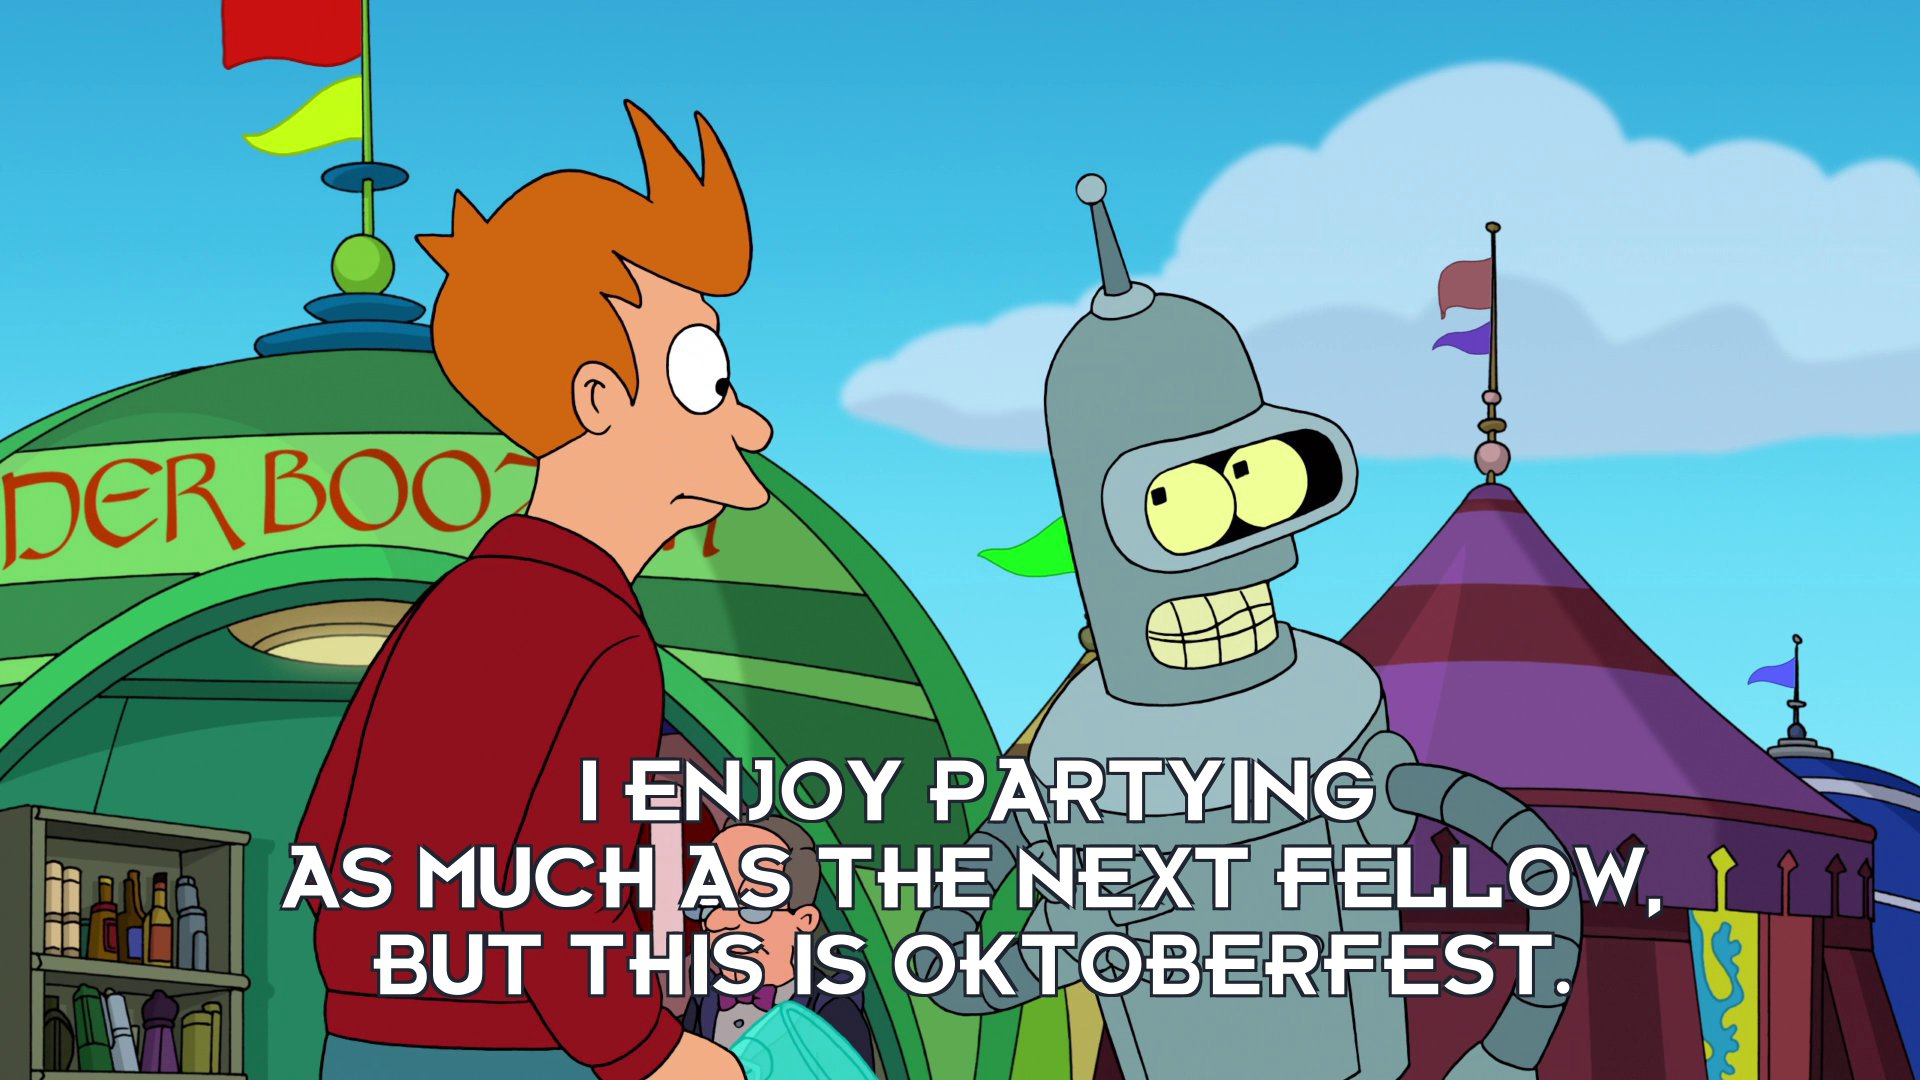 Bender Bending Rodriguez: I enjoy partying as much as the next fellow, but this is Oktoberfest.